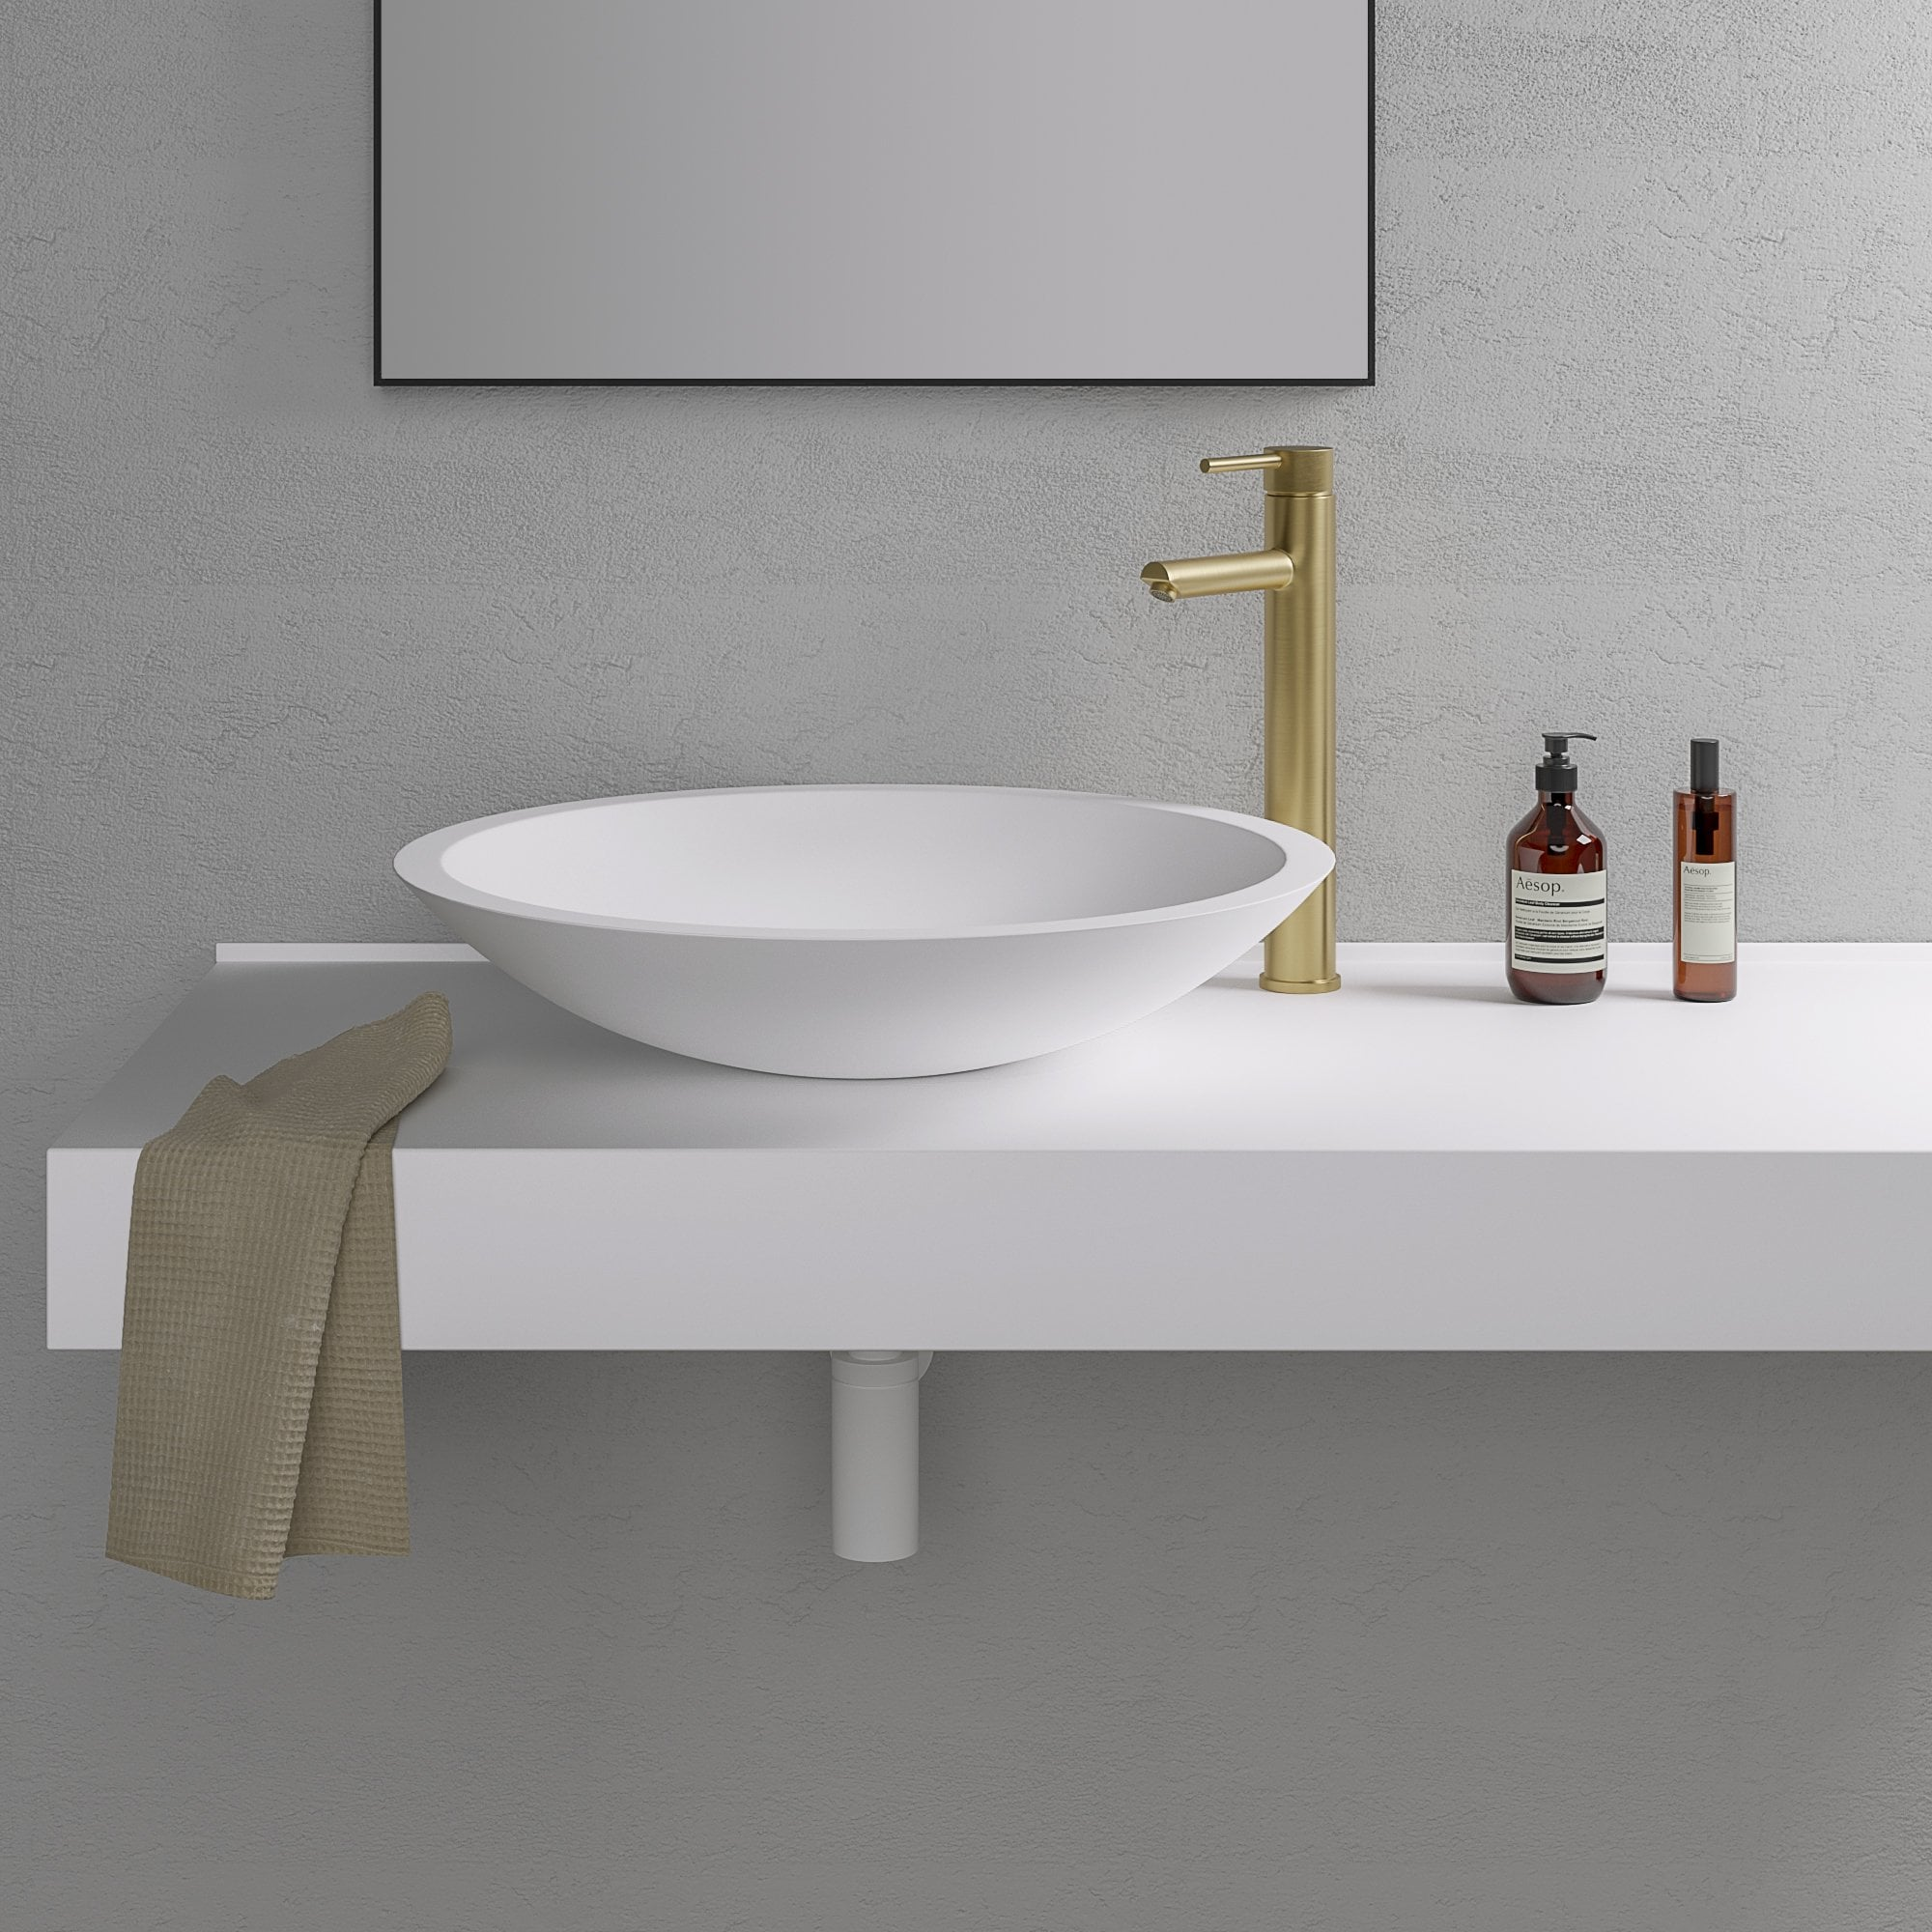 Notion 515mm Stone Counter Top Basin